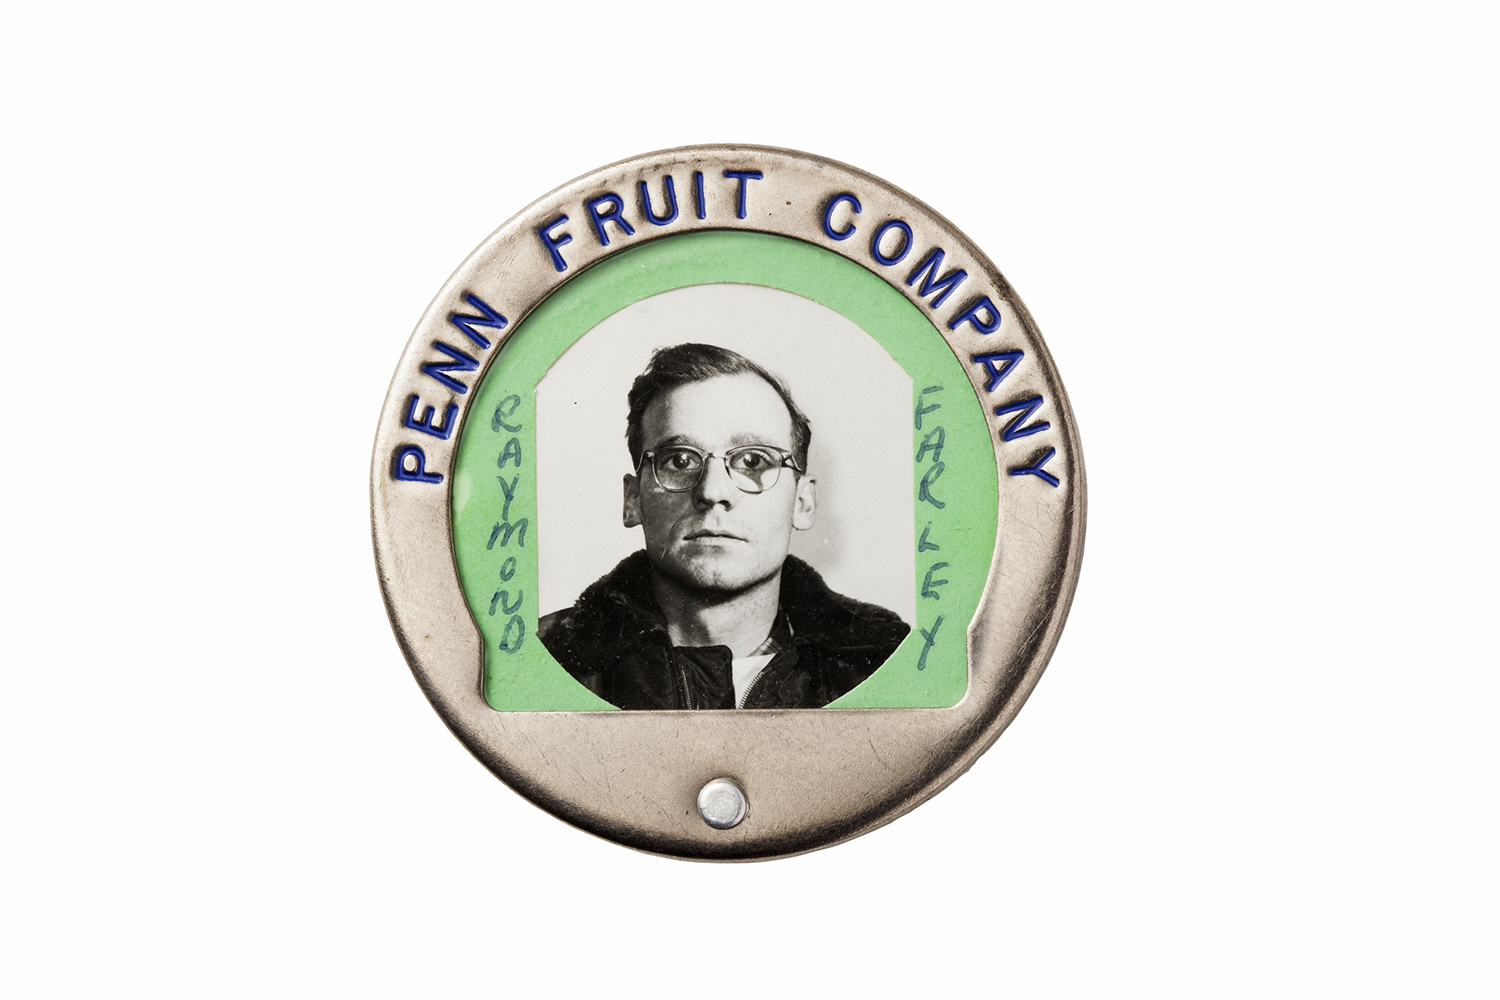 The ID badge of an employee at the Penn Fruit Company.